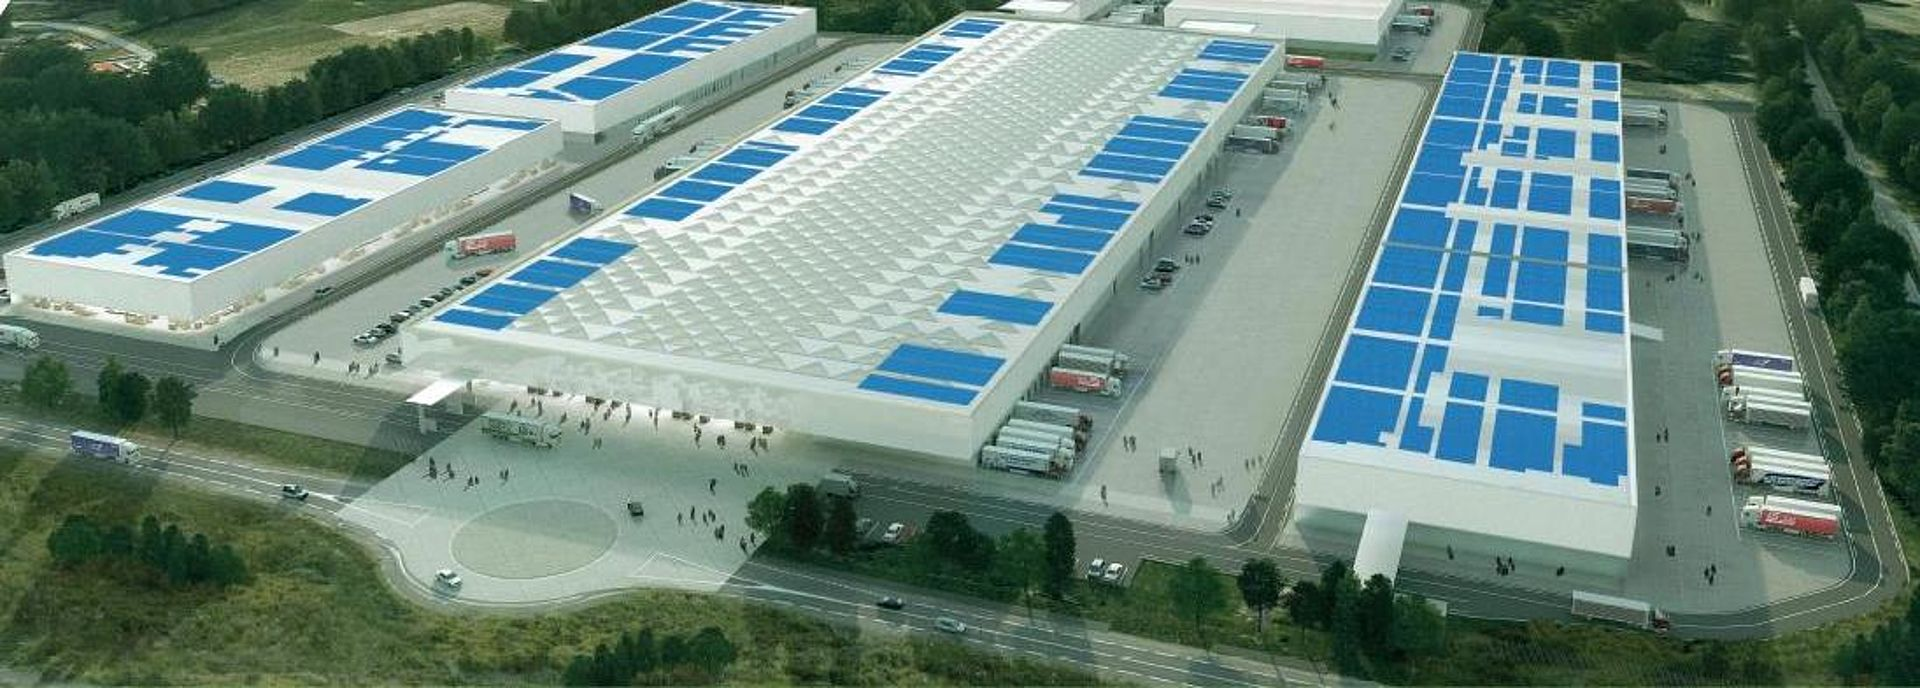 M.I.N industrial estate with PV panels on its roof